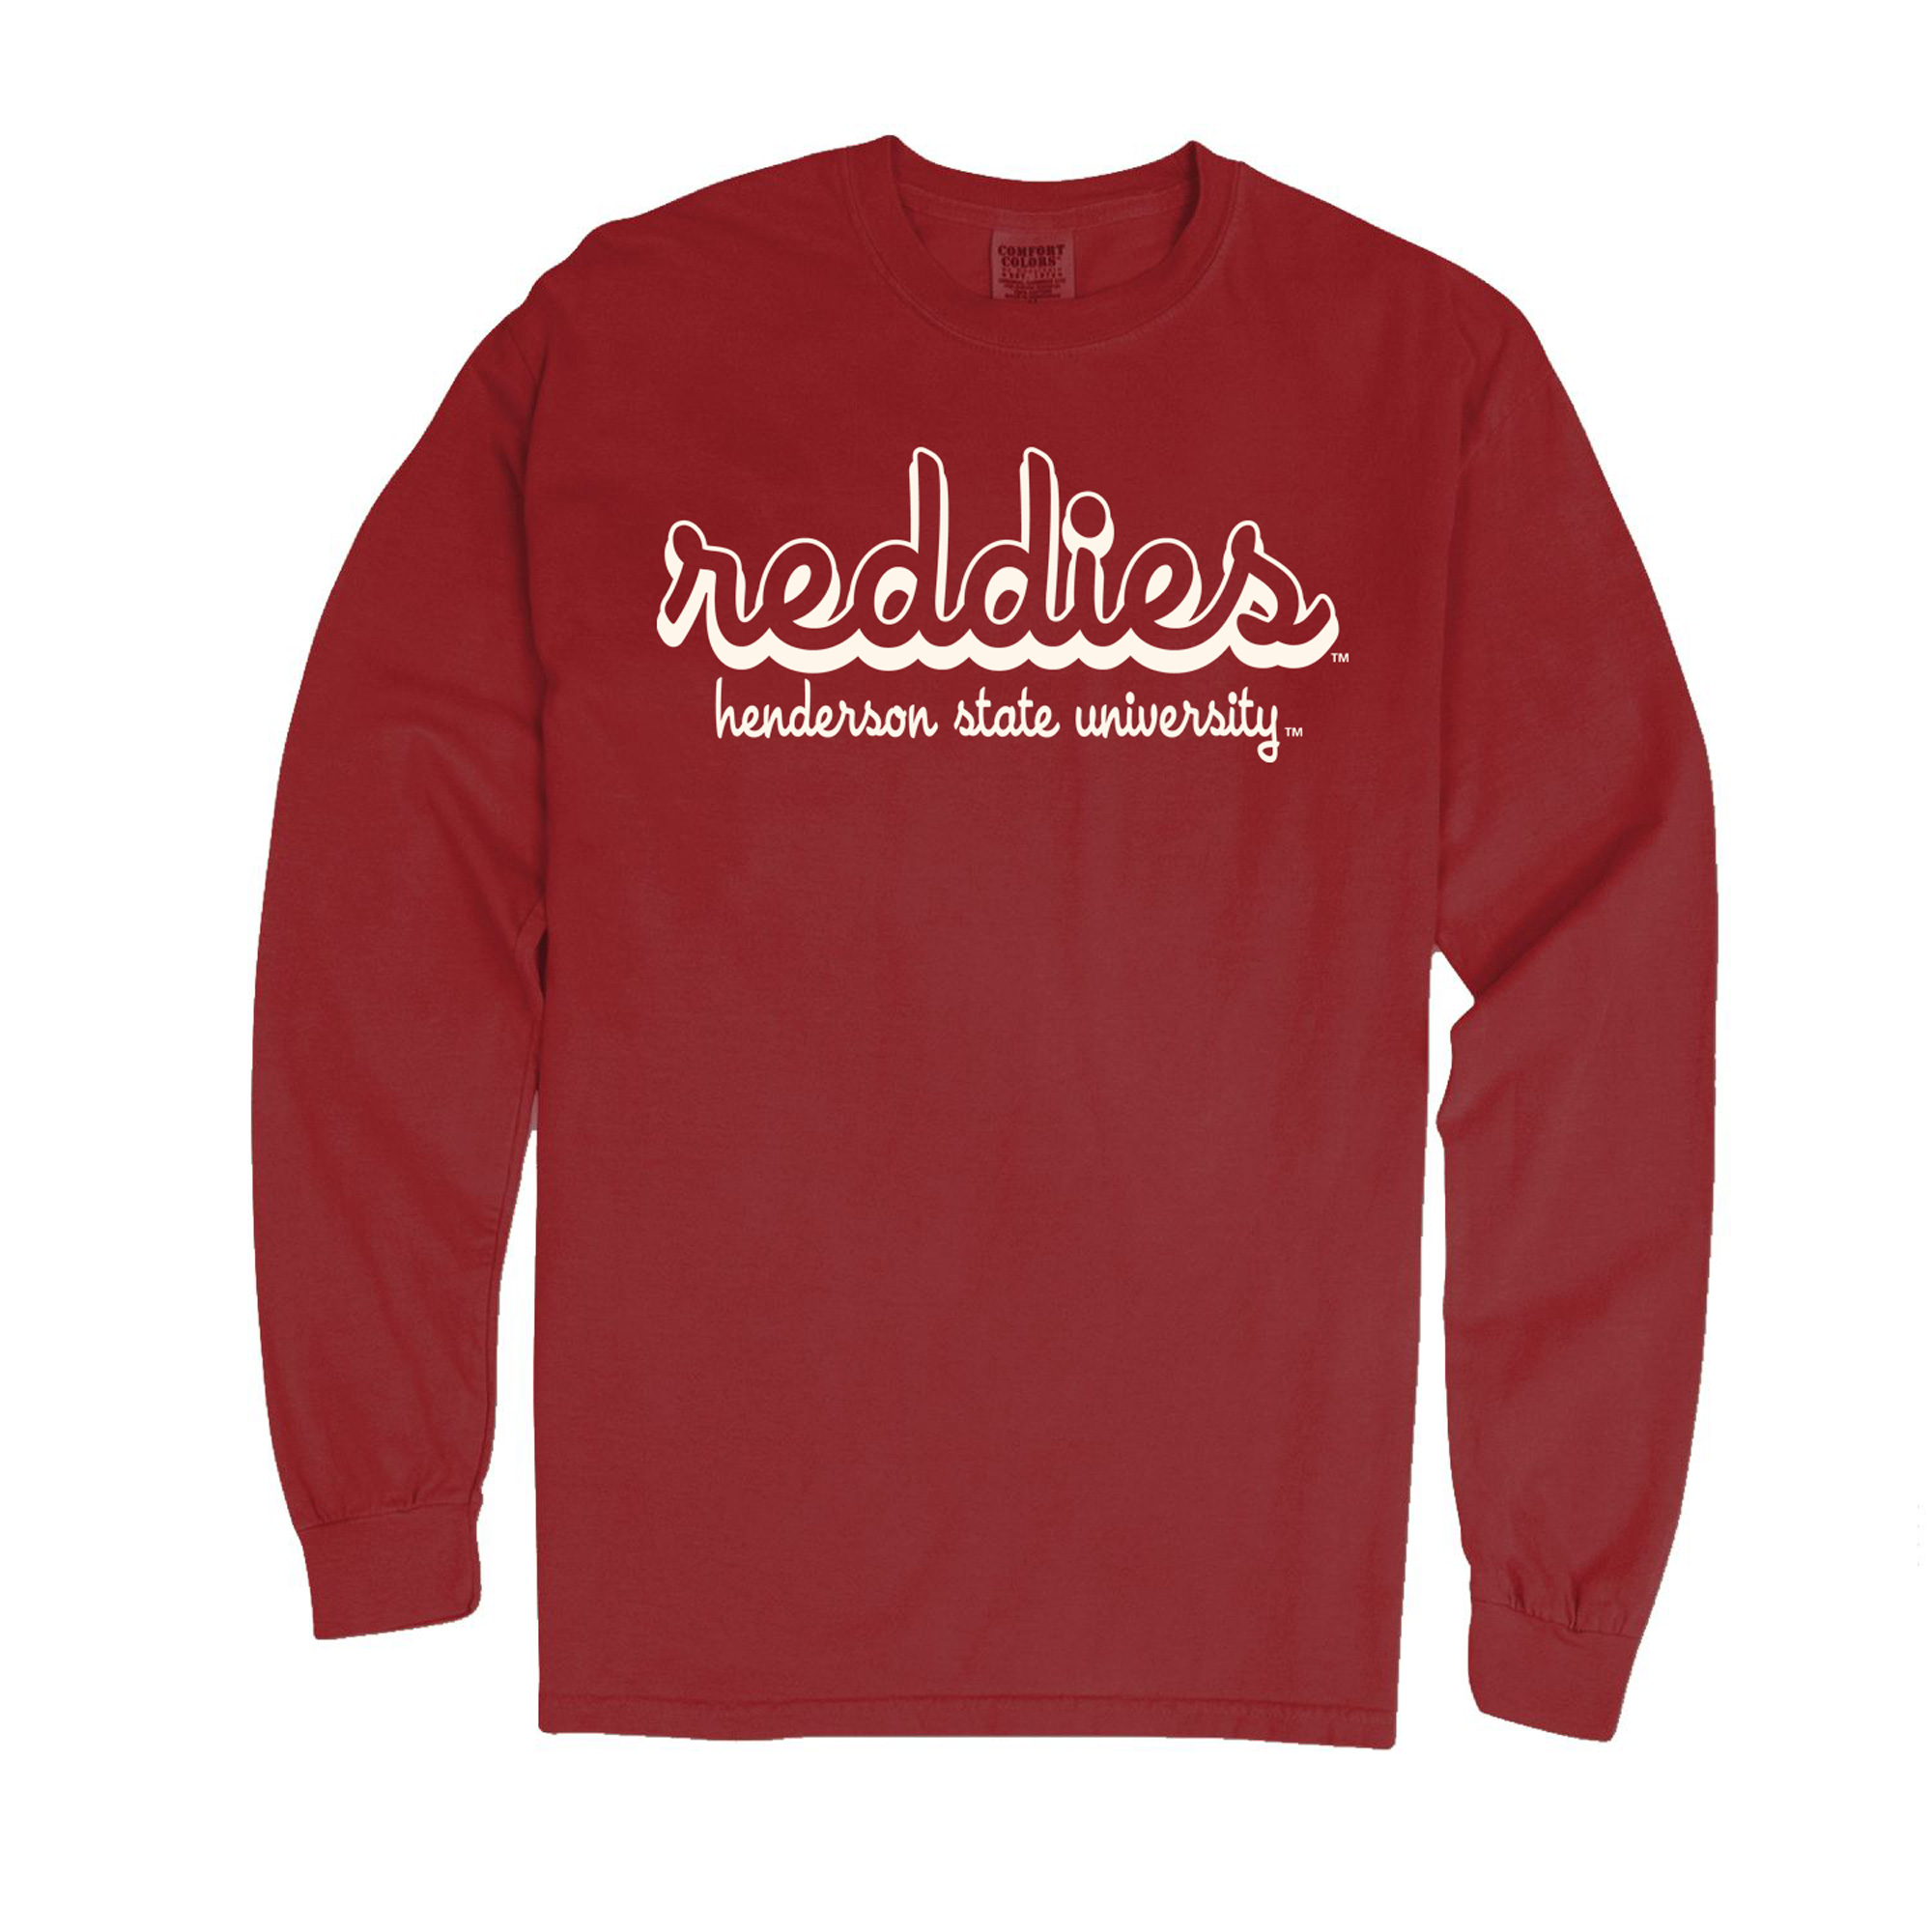 Reddies Henderson State University Comfort Colors Long Sleeve T-Shirt